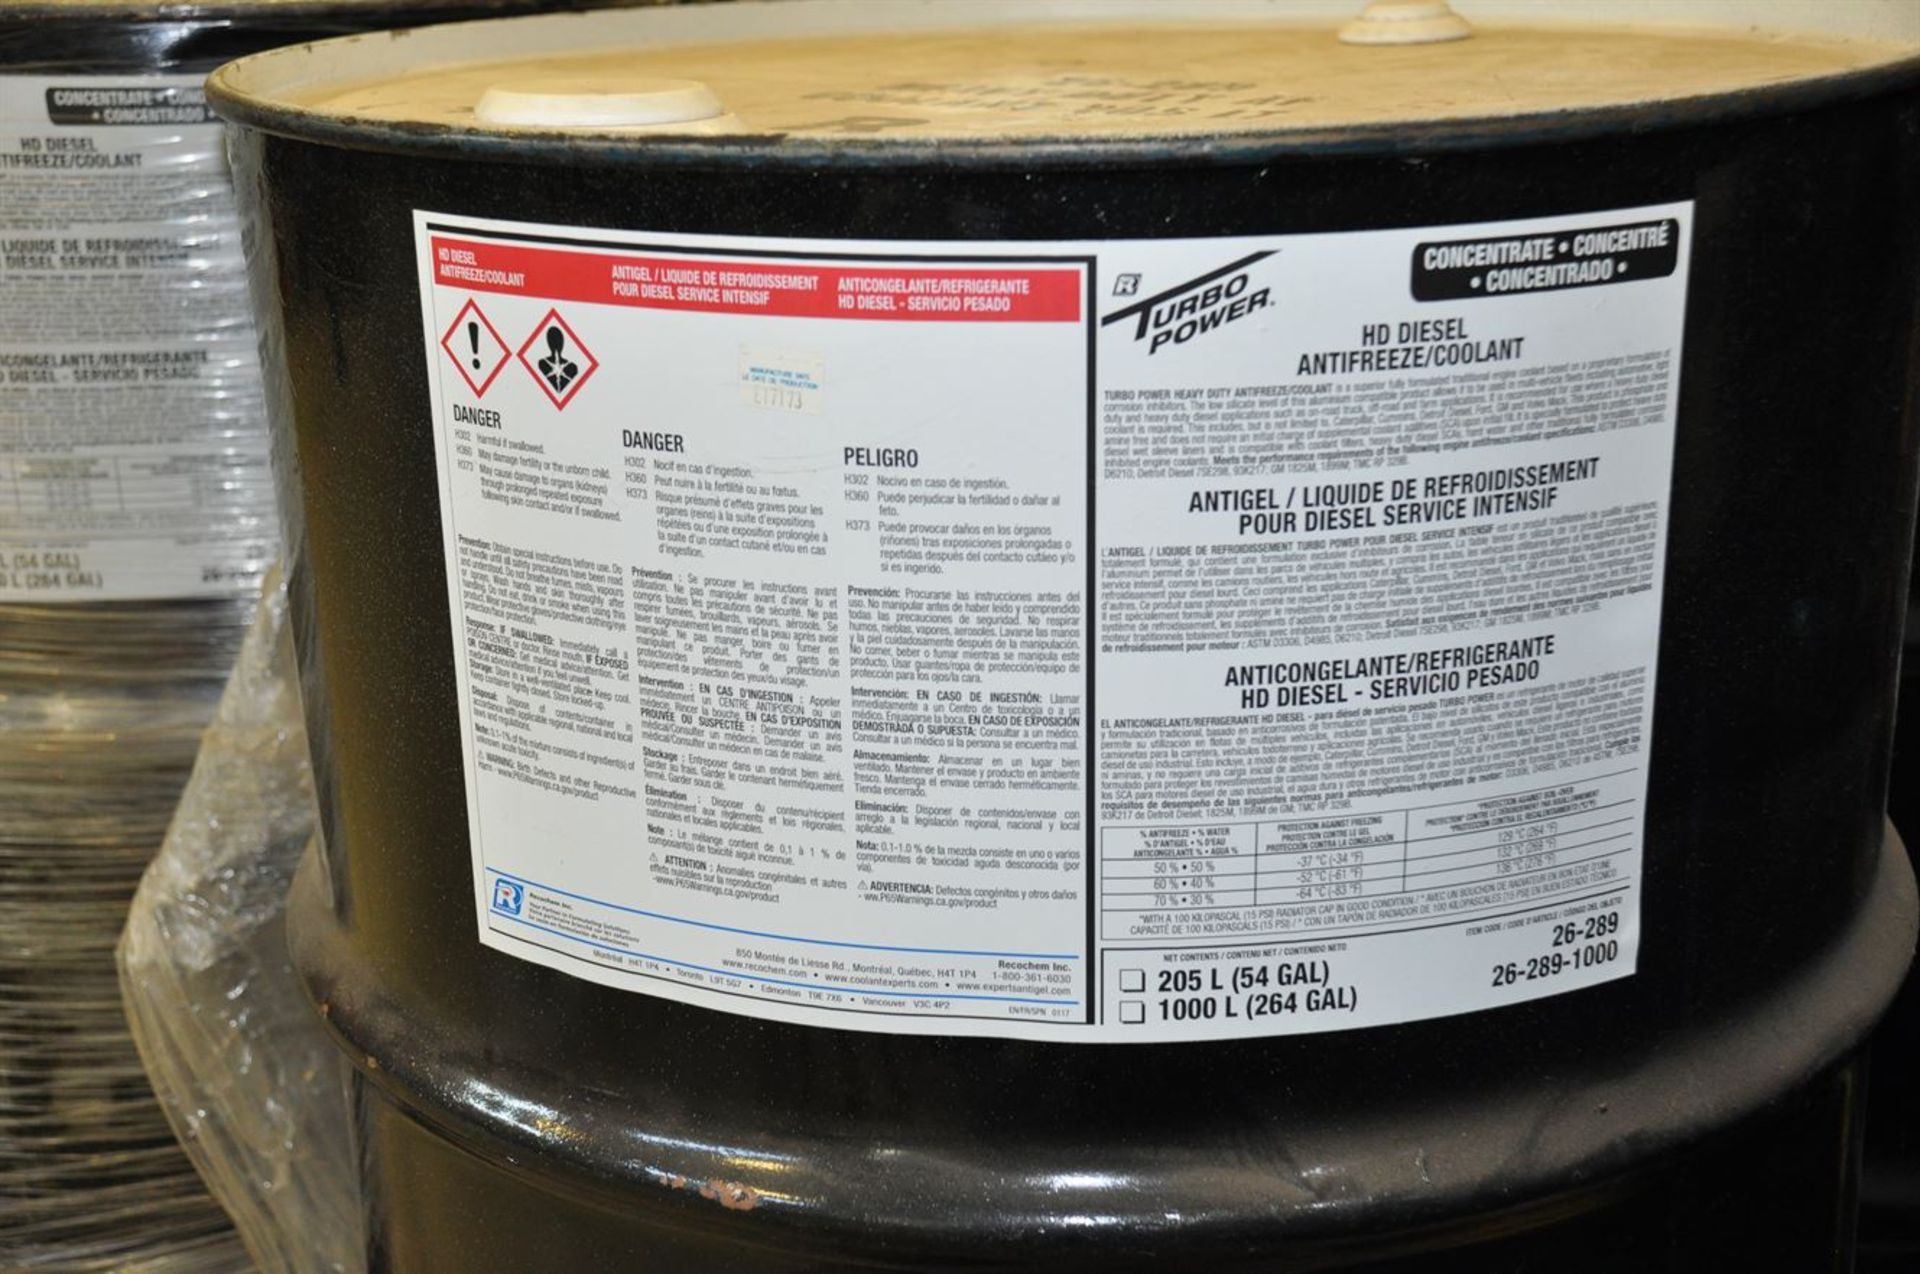 (12) Unopened 205 Litre Drums of HD Diesel Antifreeze/Coolant (Glycol) - Image 2 of 2